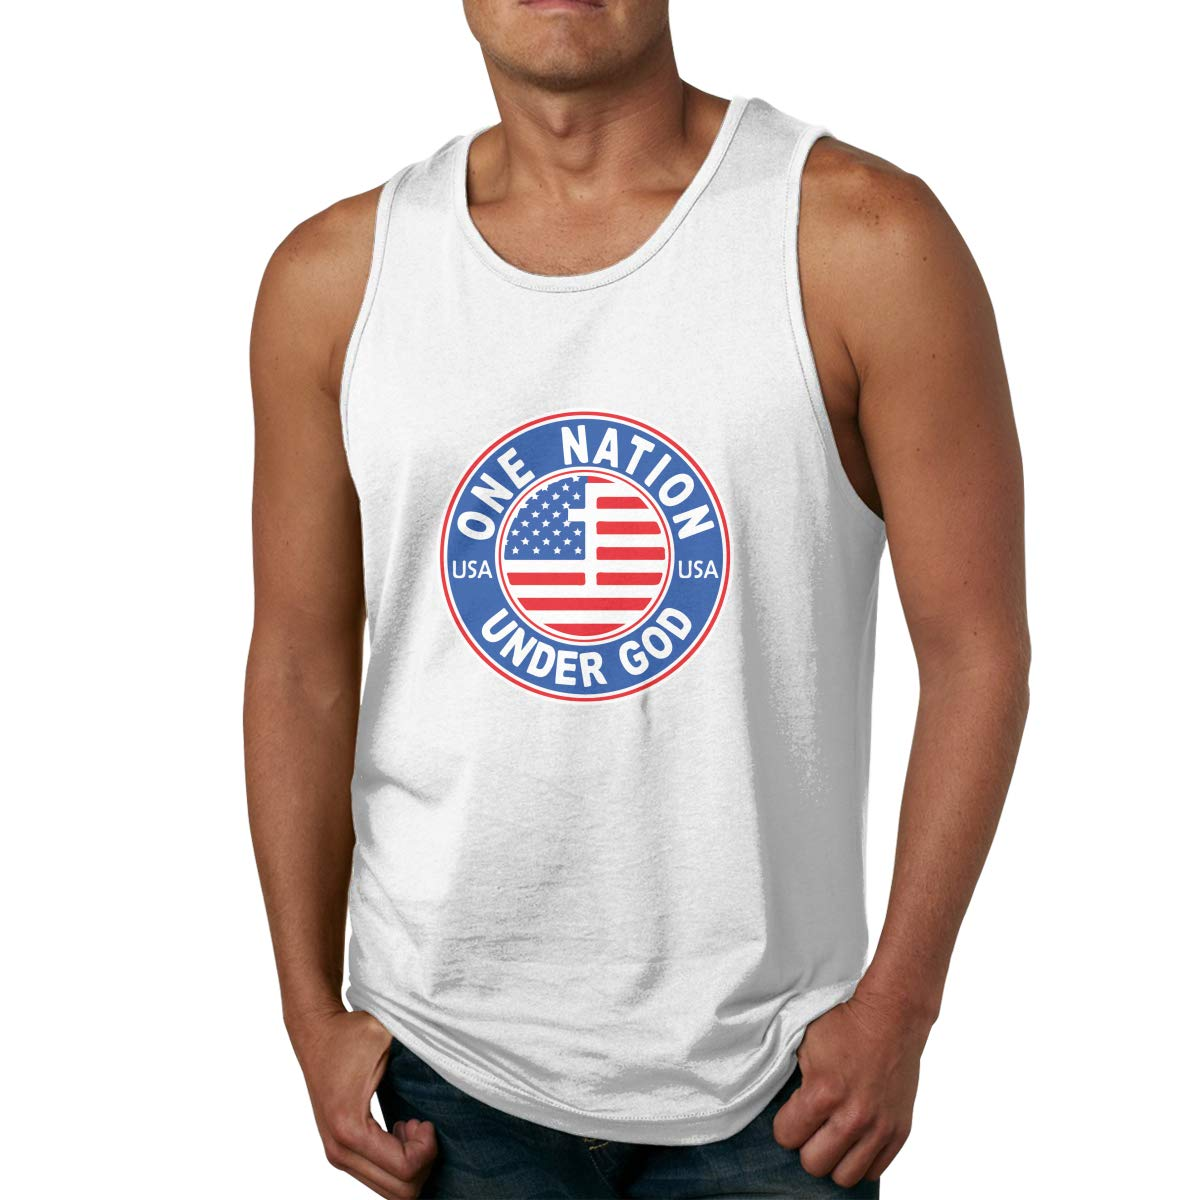 YASEFS Geek Designed T Shirt America One Nation Under God Stank Top Shirt for Male White